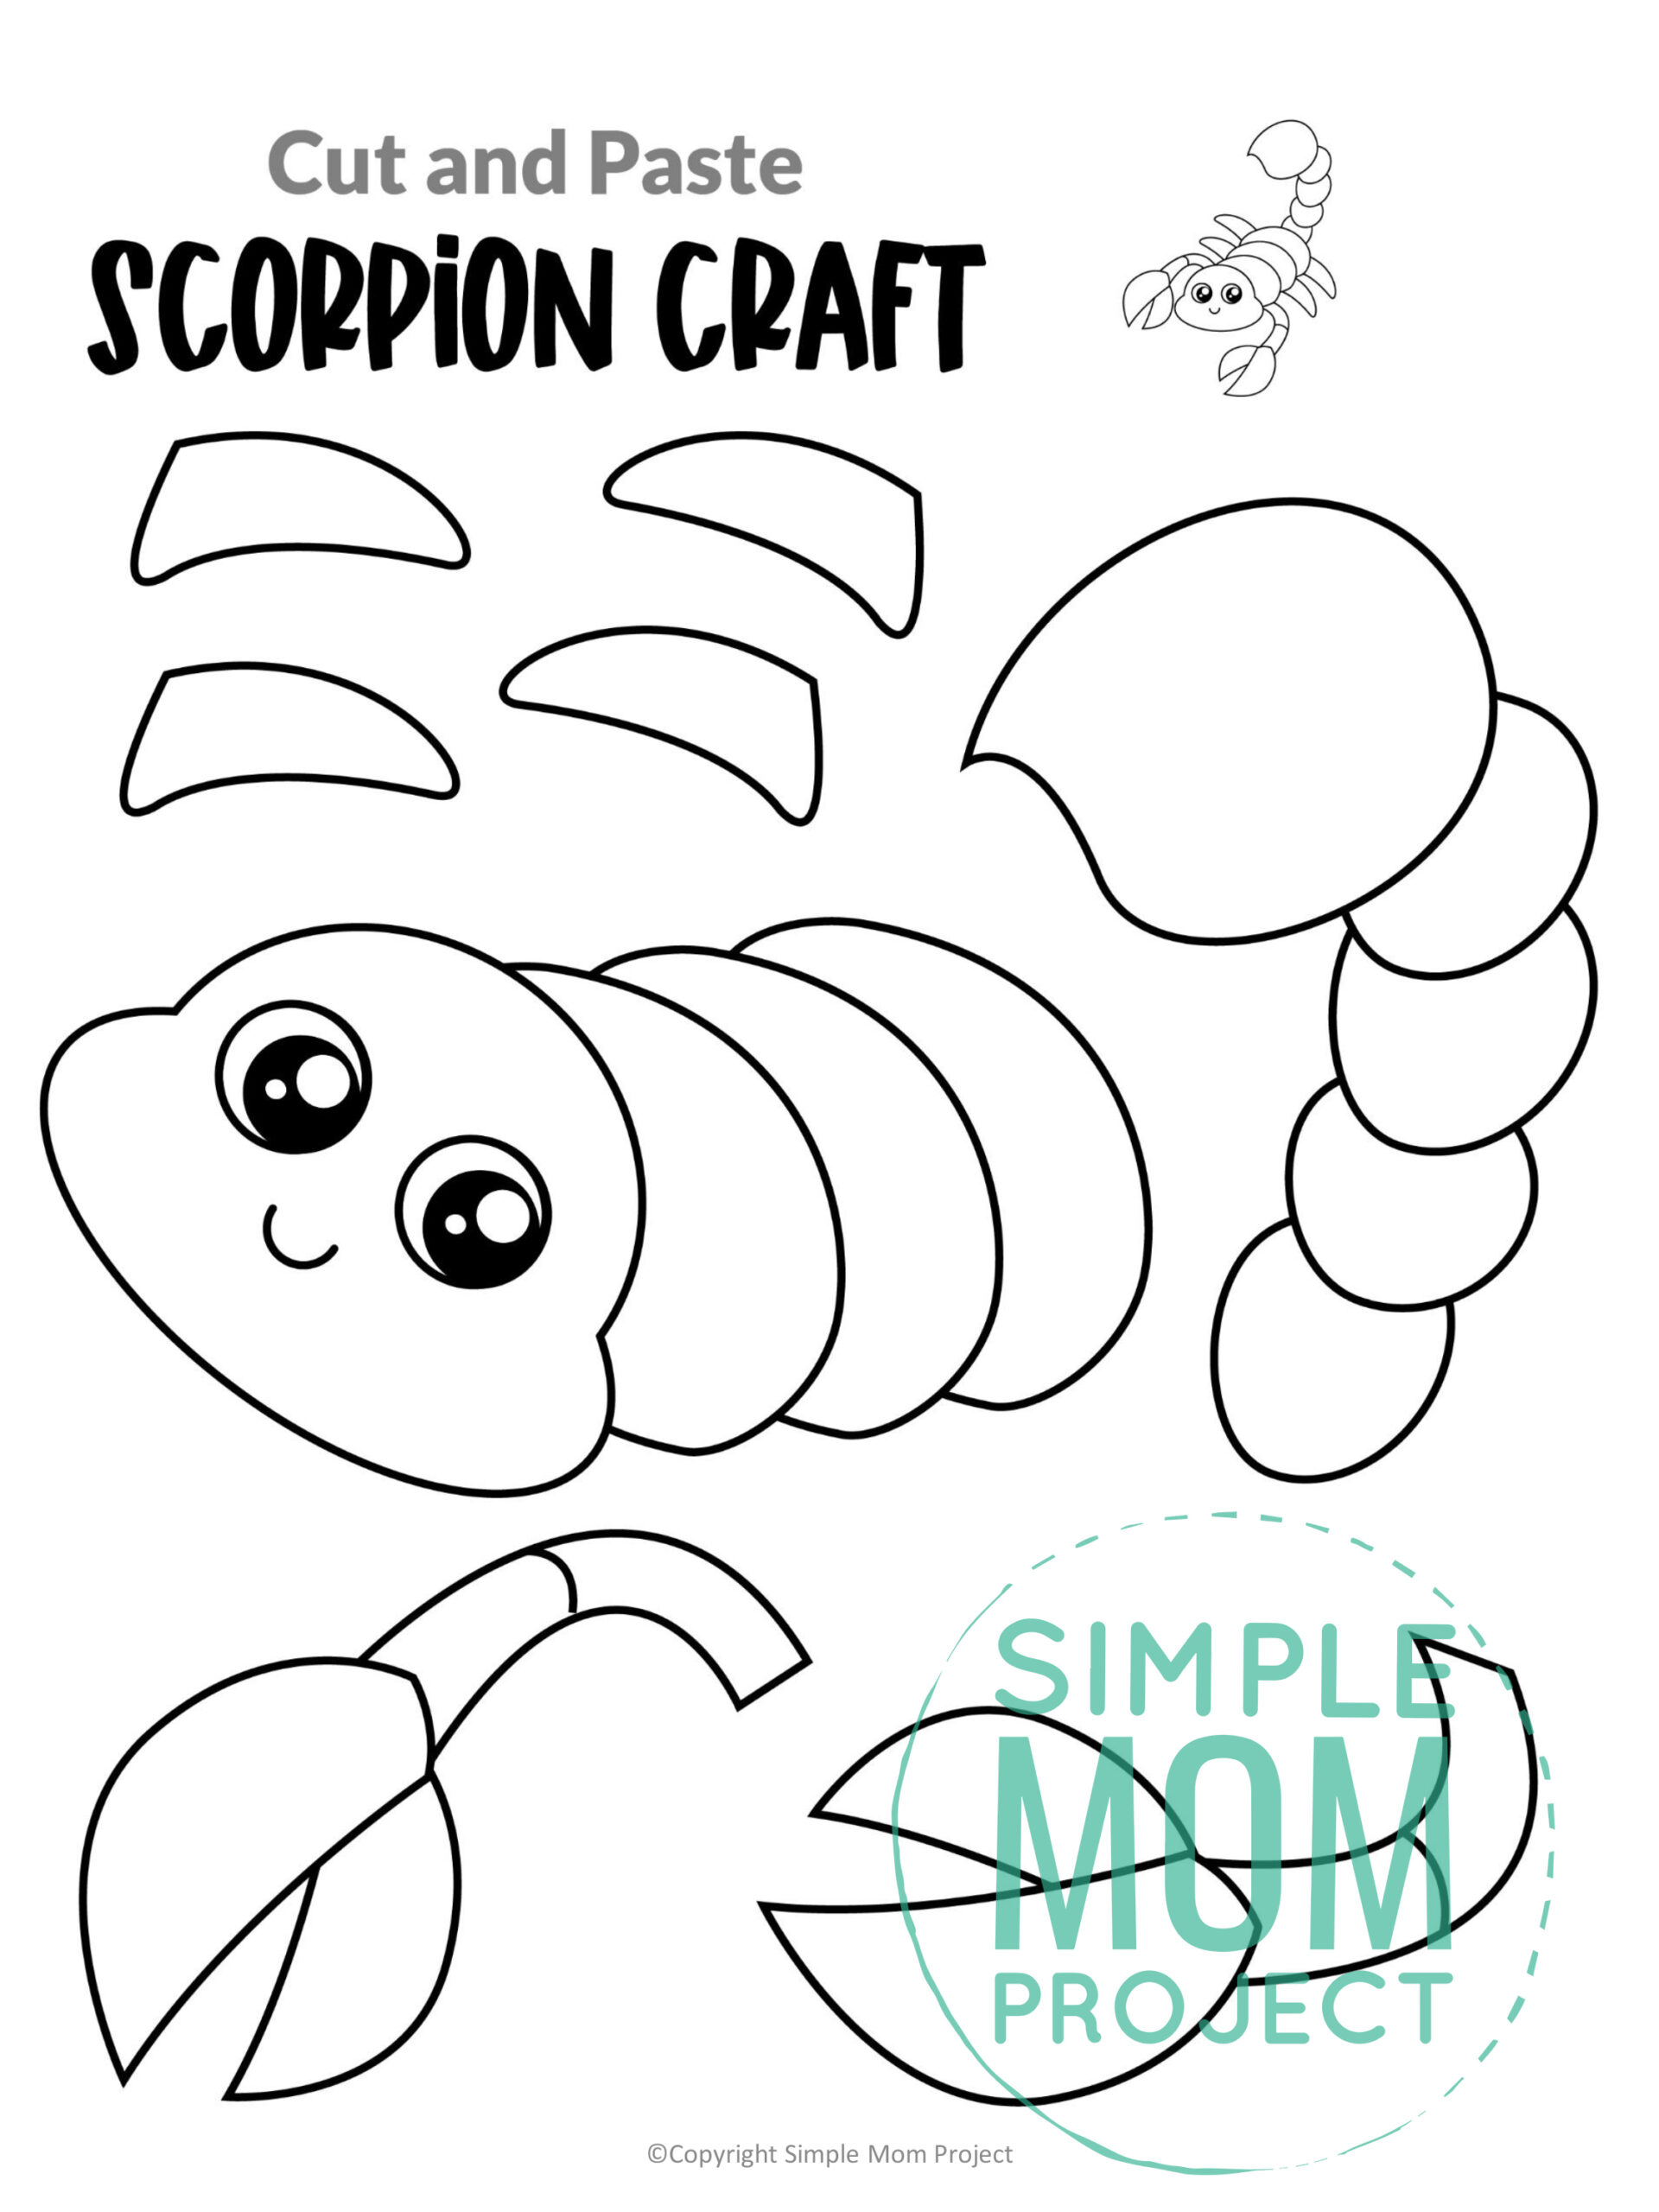 Printable Scorpion Craft for Kids, preschoolers and toddlers